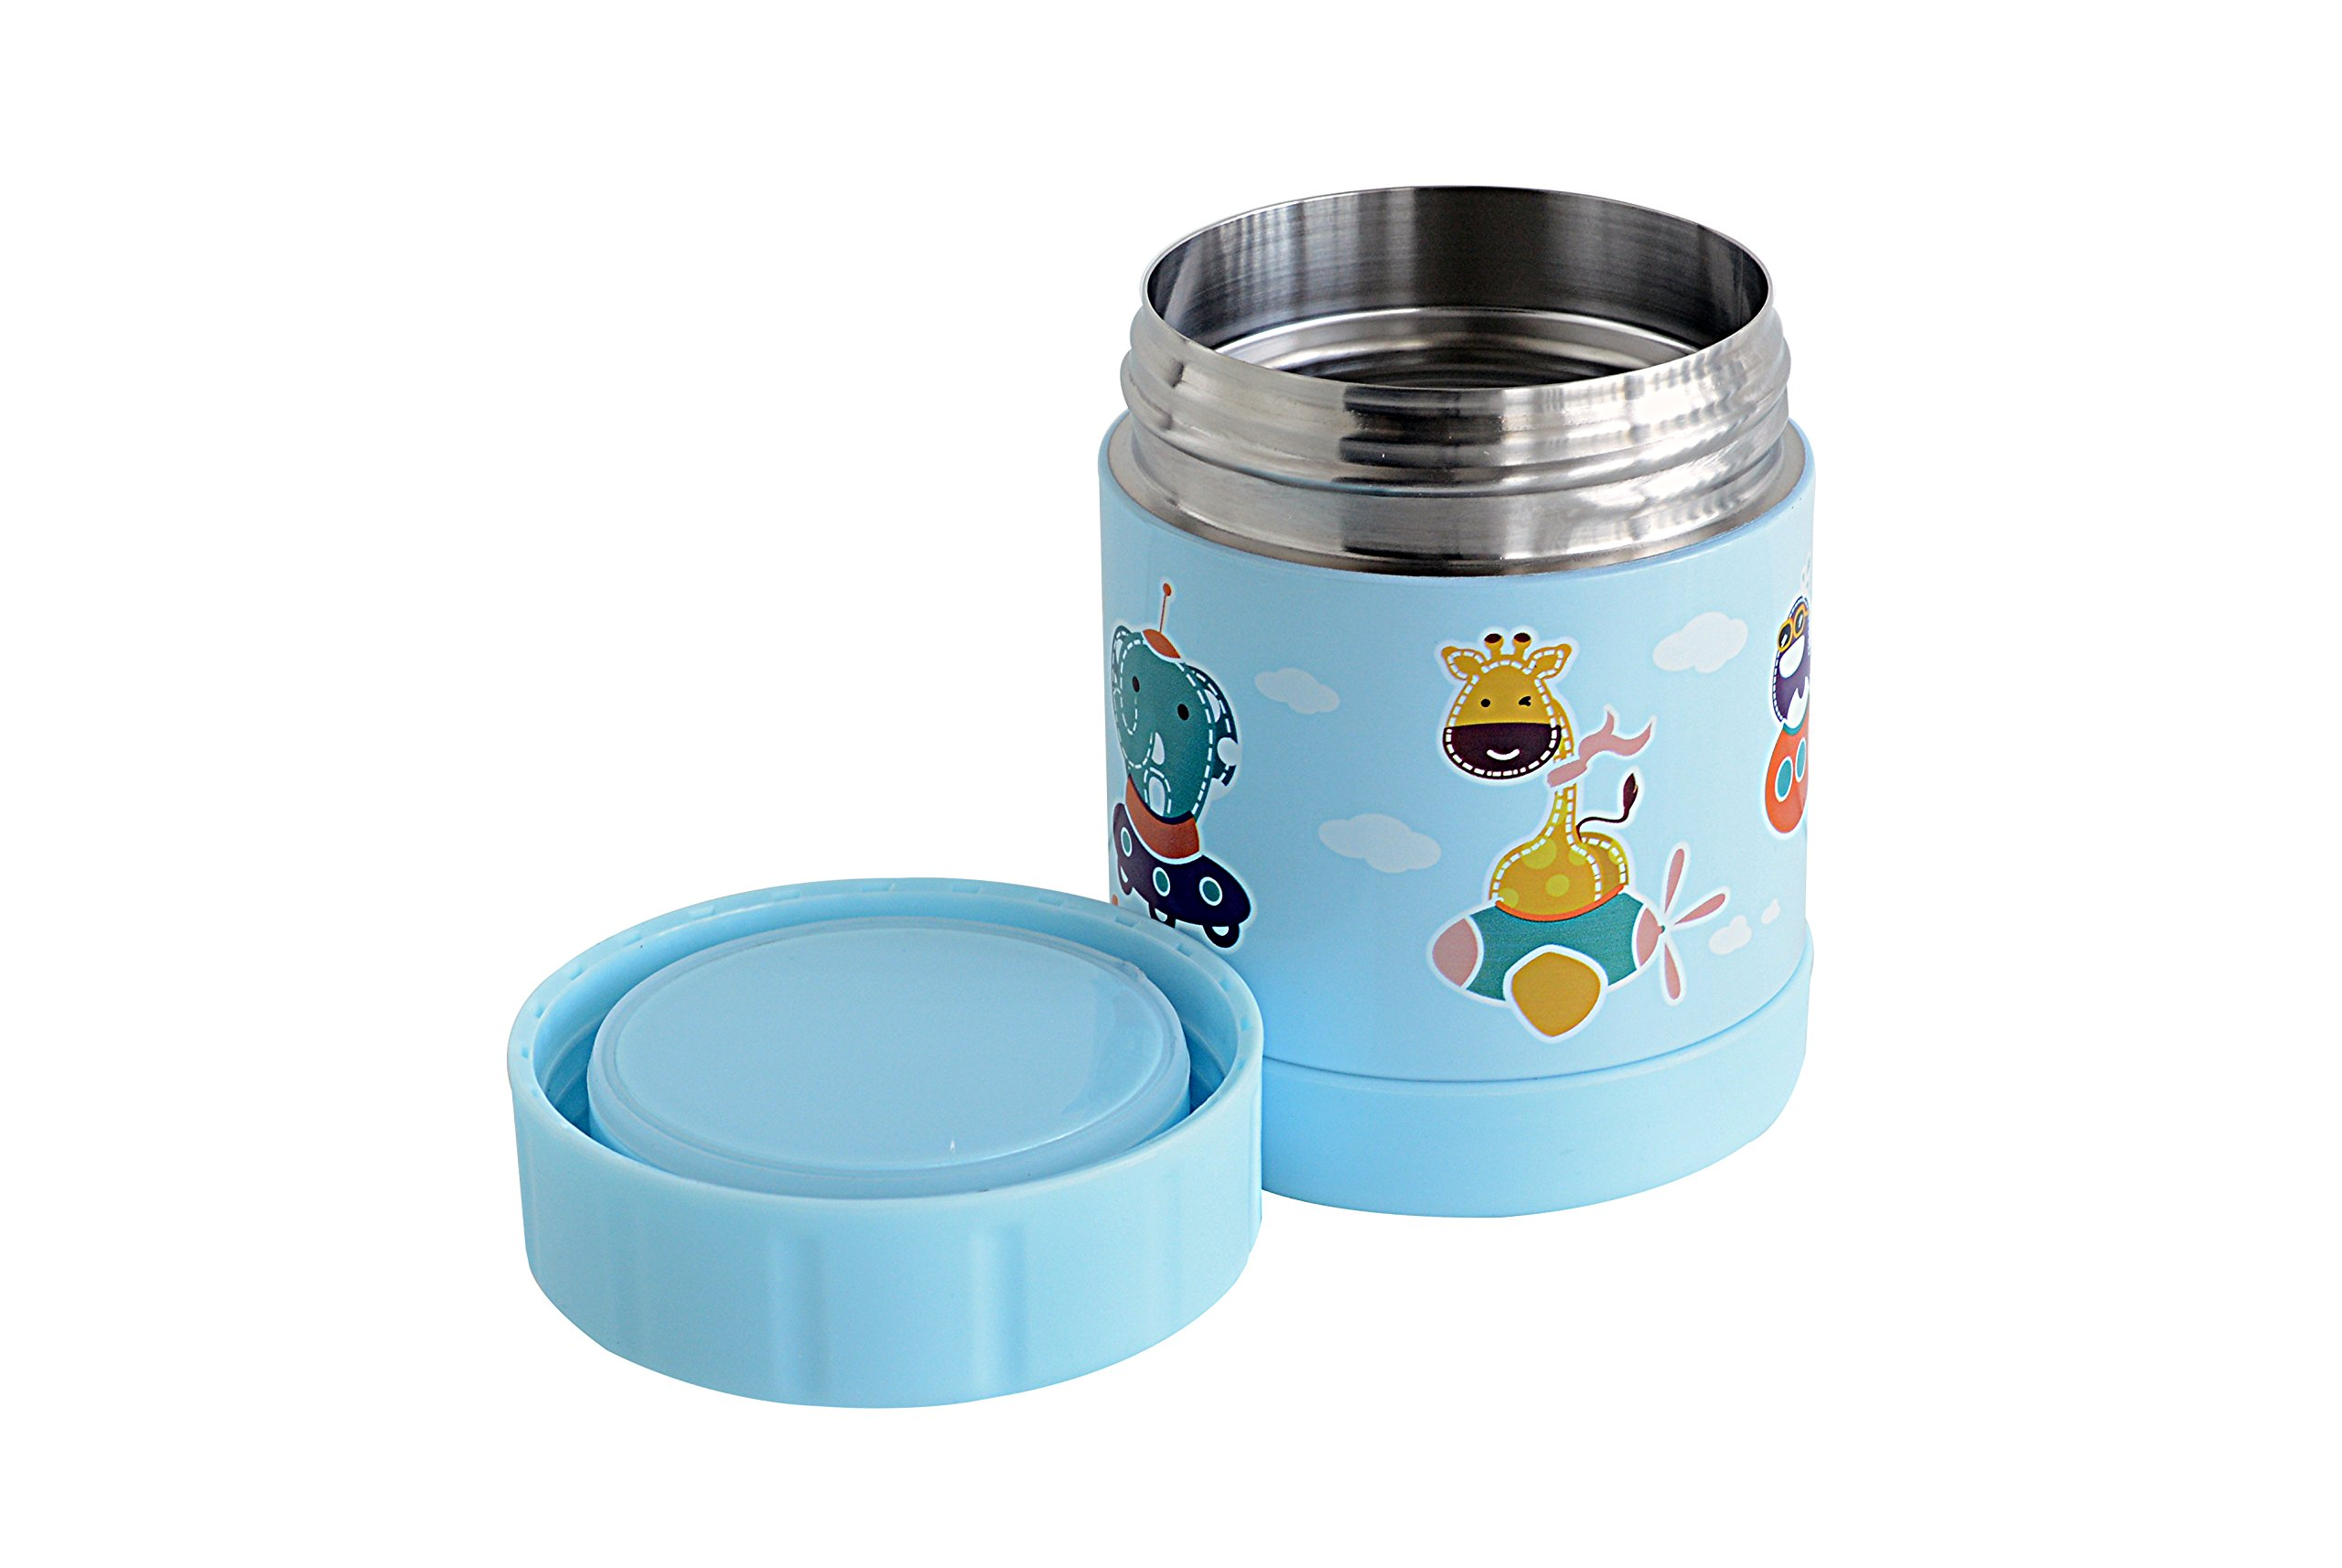 Marcus & Marcus Animal Themed Kids Stainless Steel Thermal Container - Blue